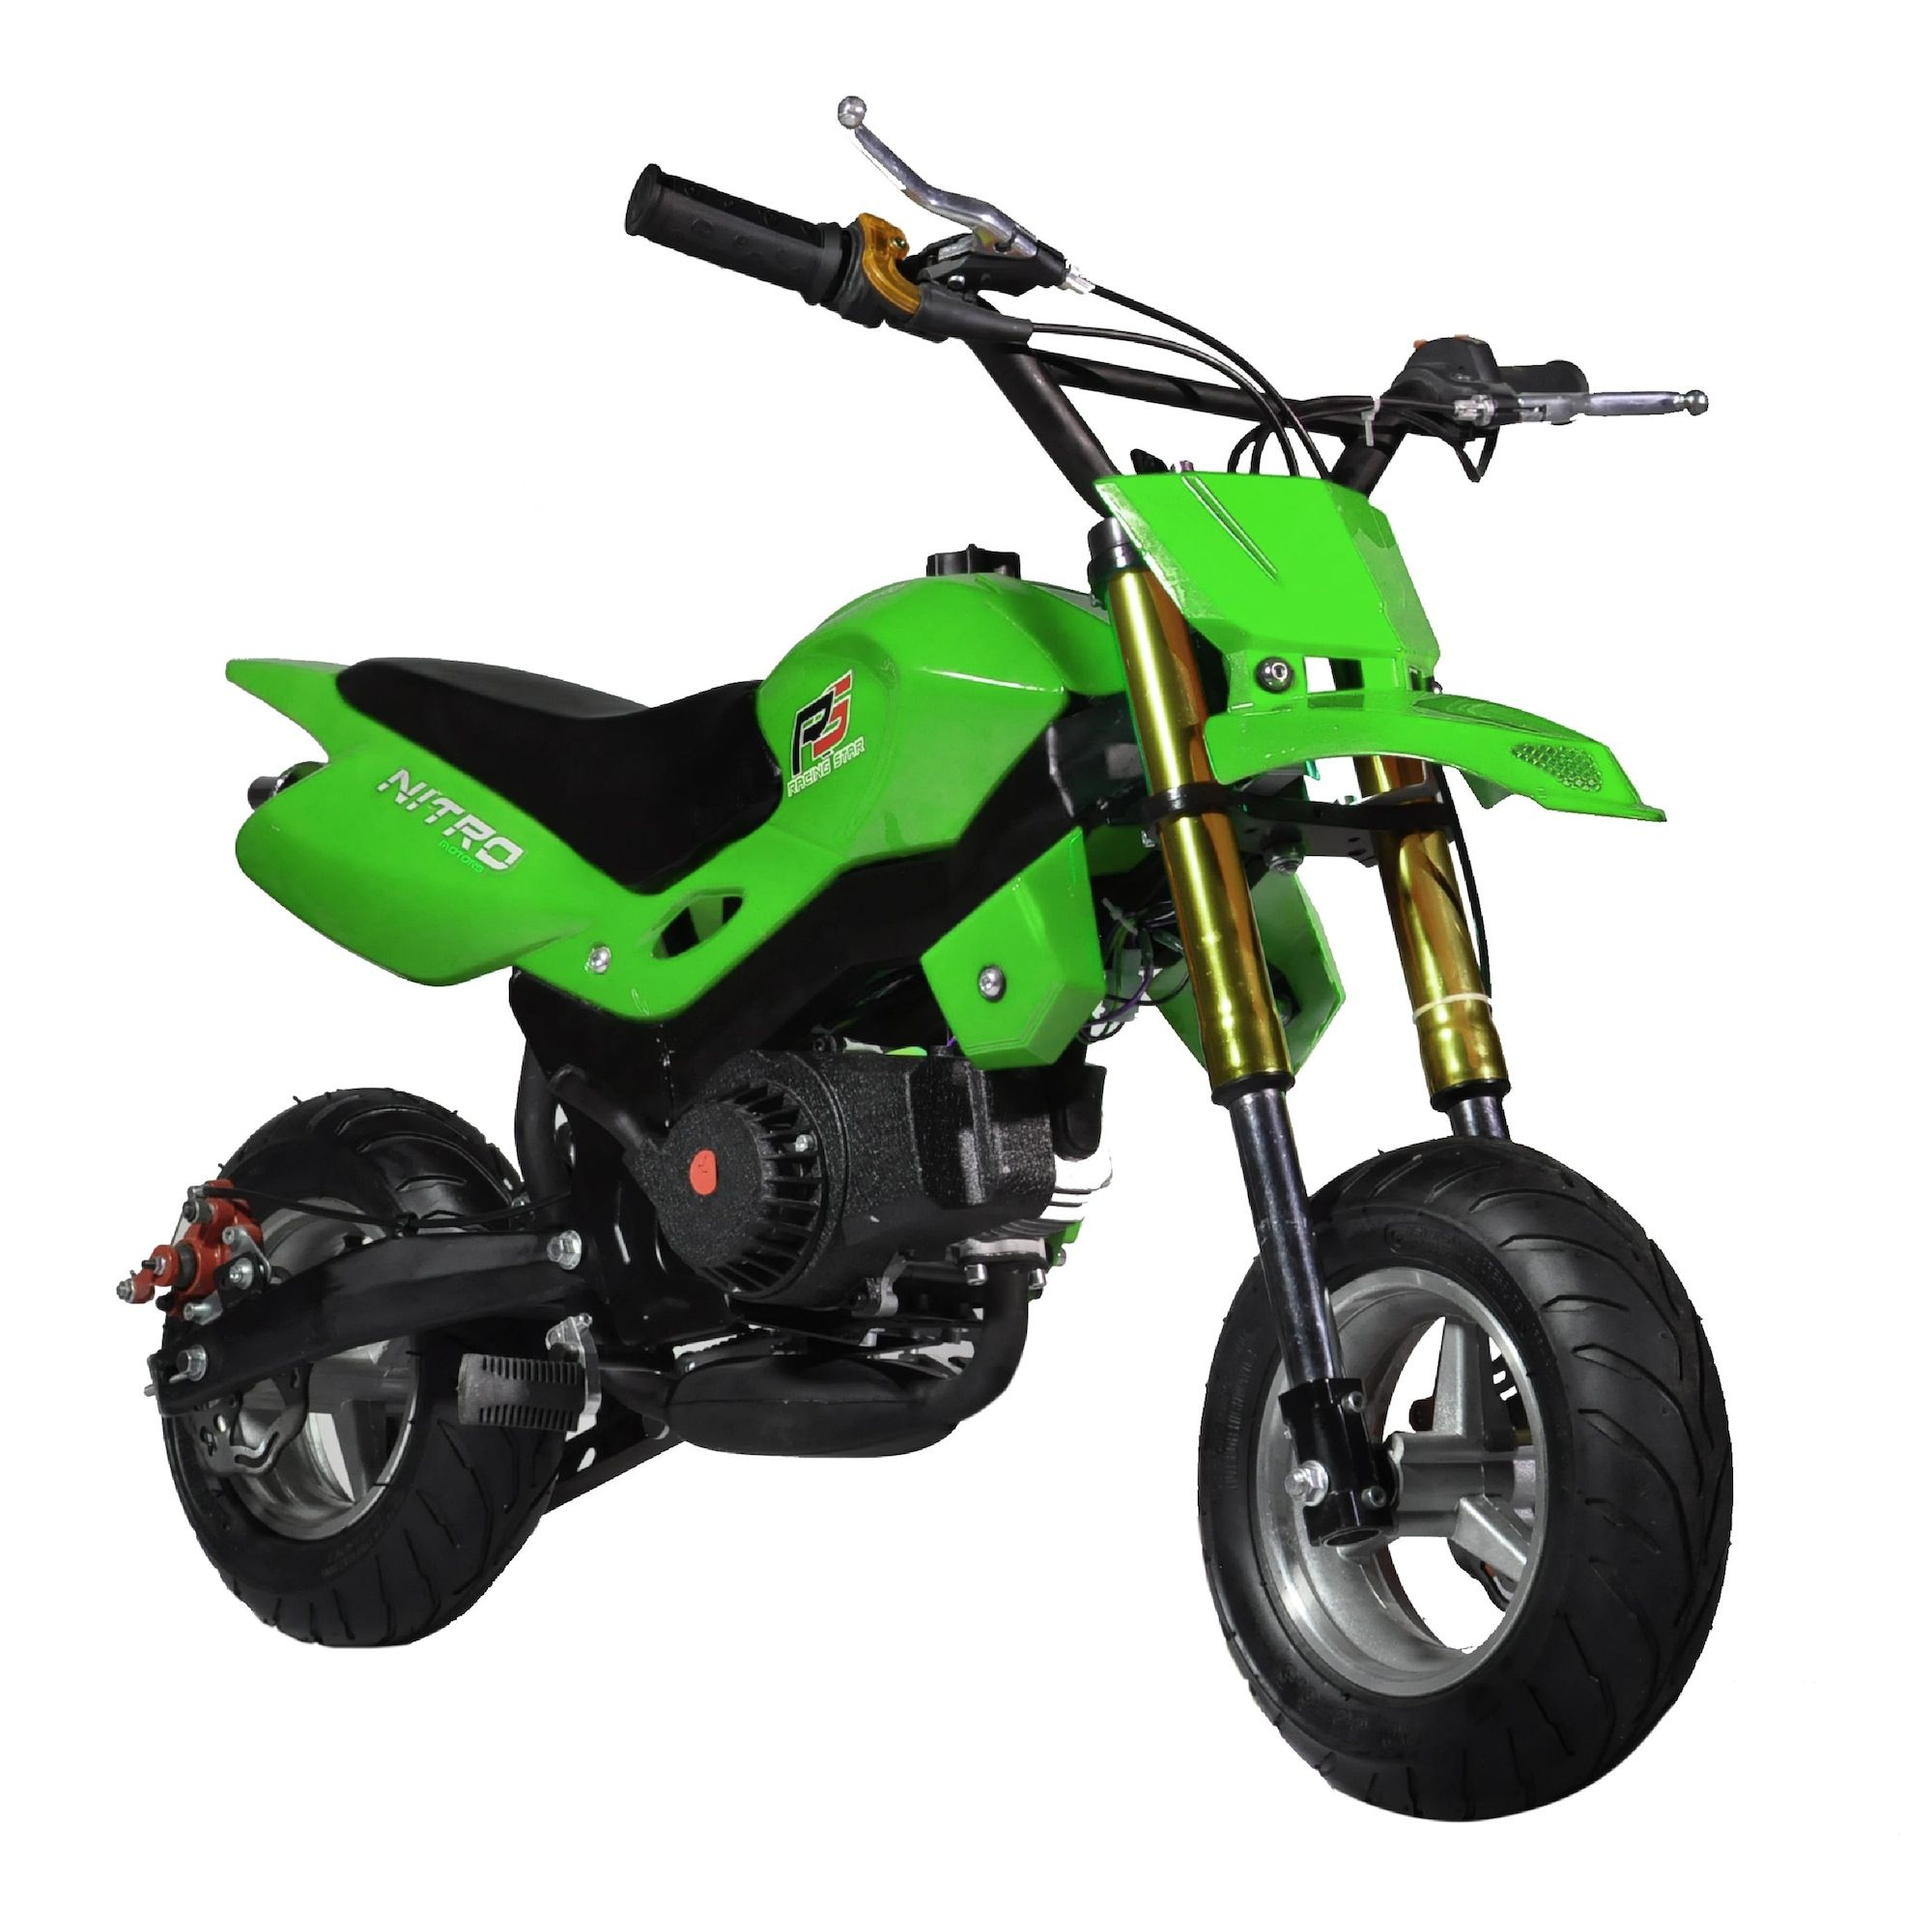 Pocket Rocket Motor Razor Pr200 Wiring Diagram Cebu Branch Unit E 6 Traders Arcade Hernan Cortez Mandaue City Philippines 6014 Davao Electric Bike Parts